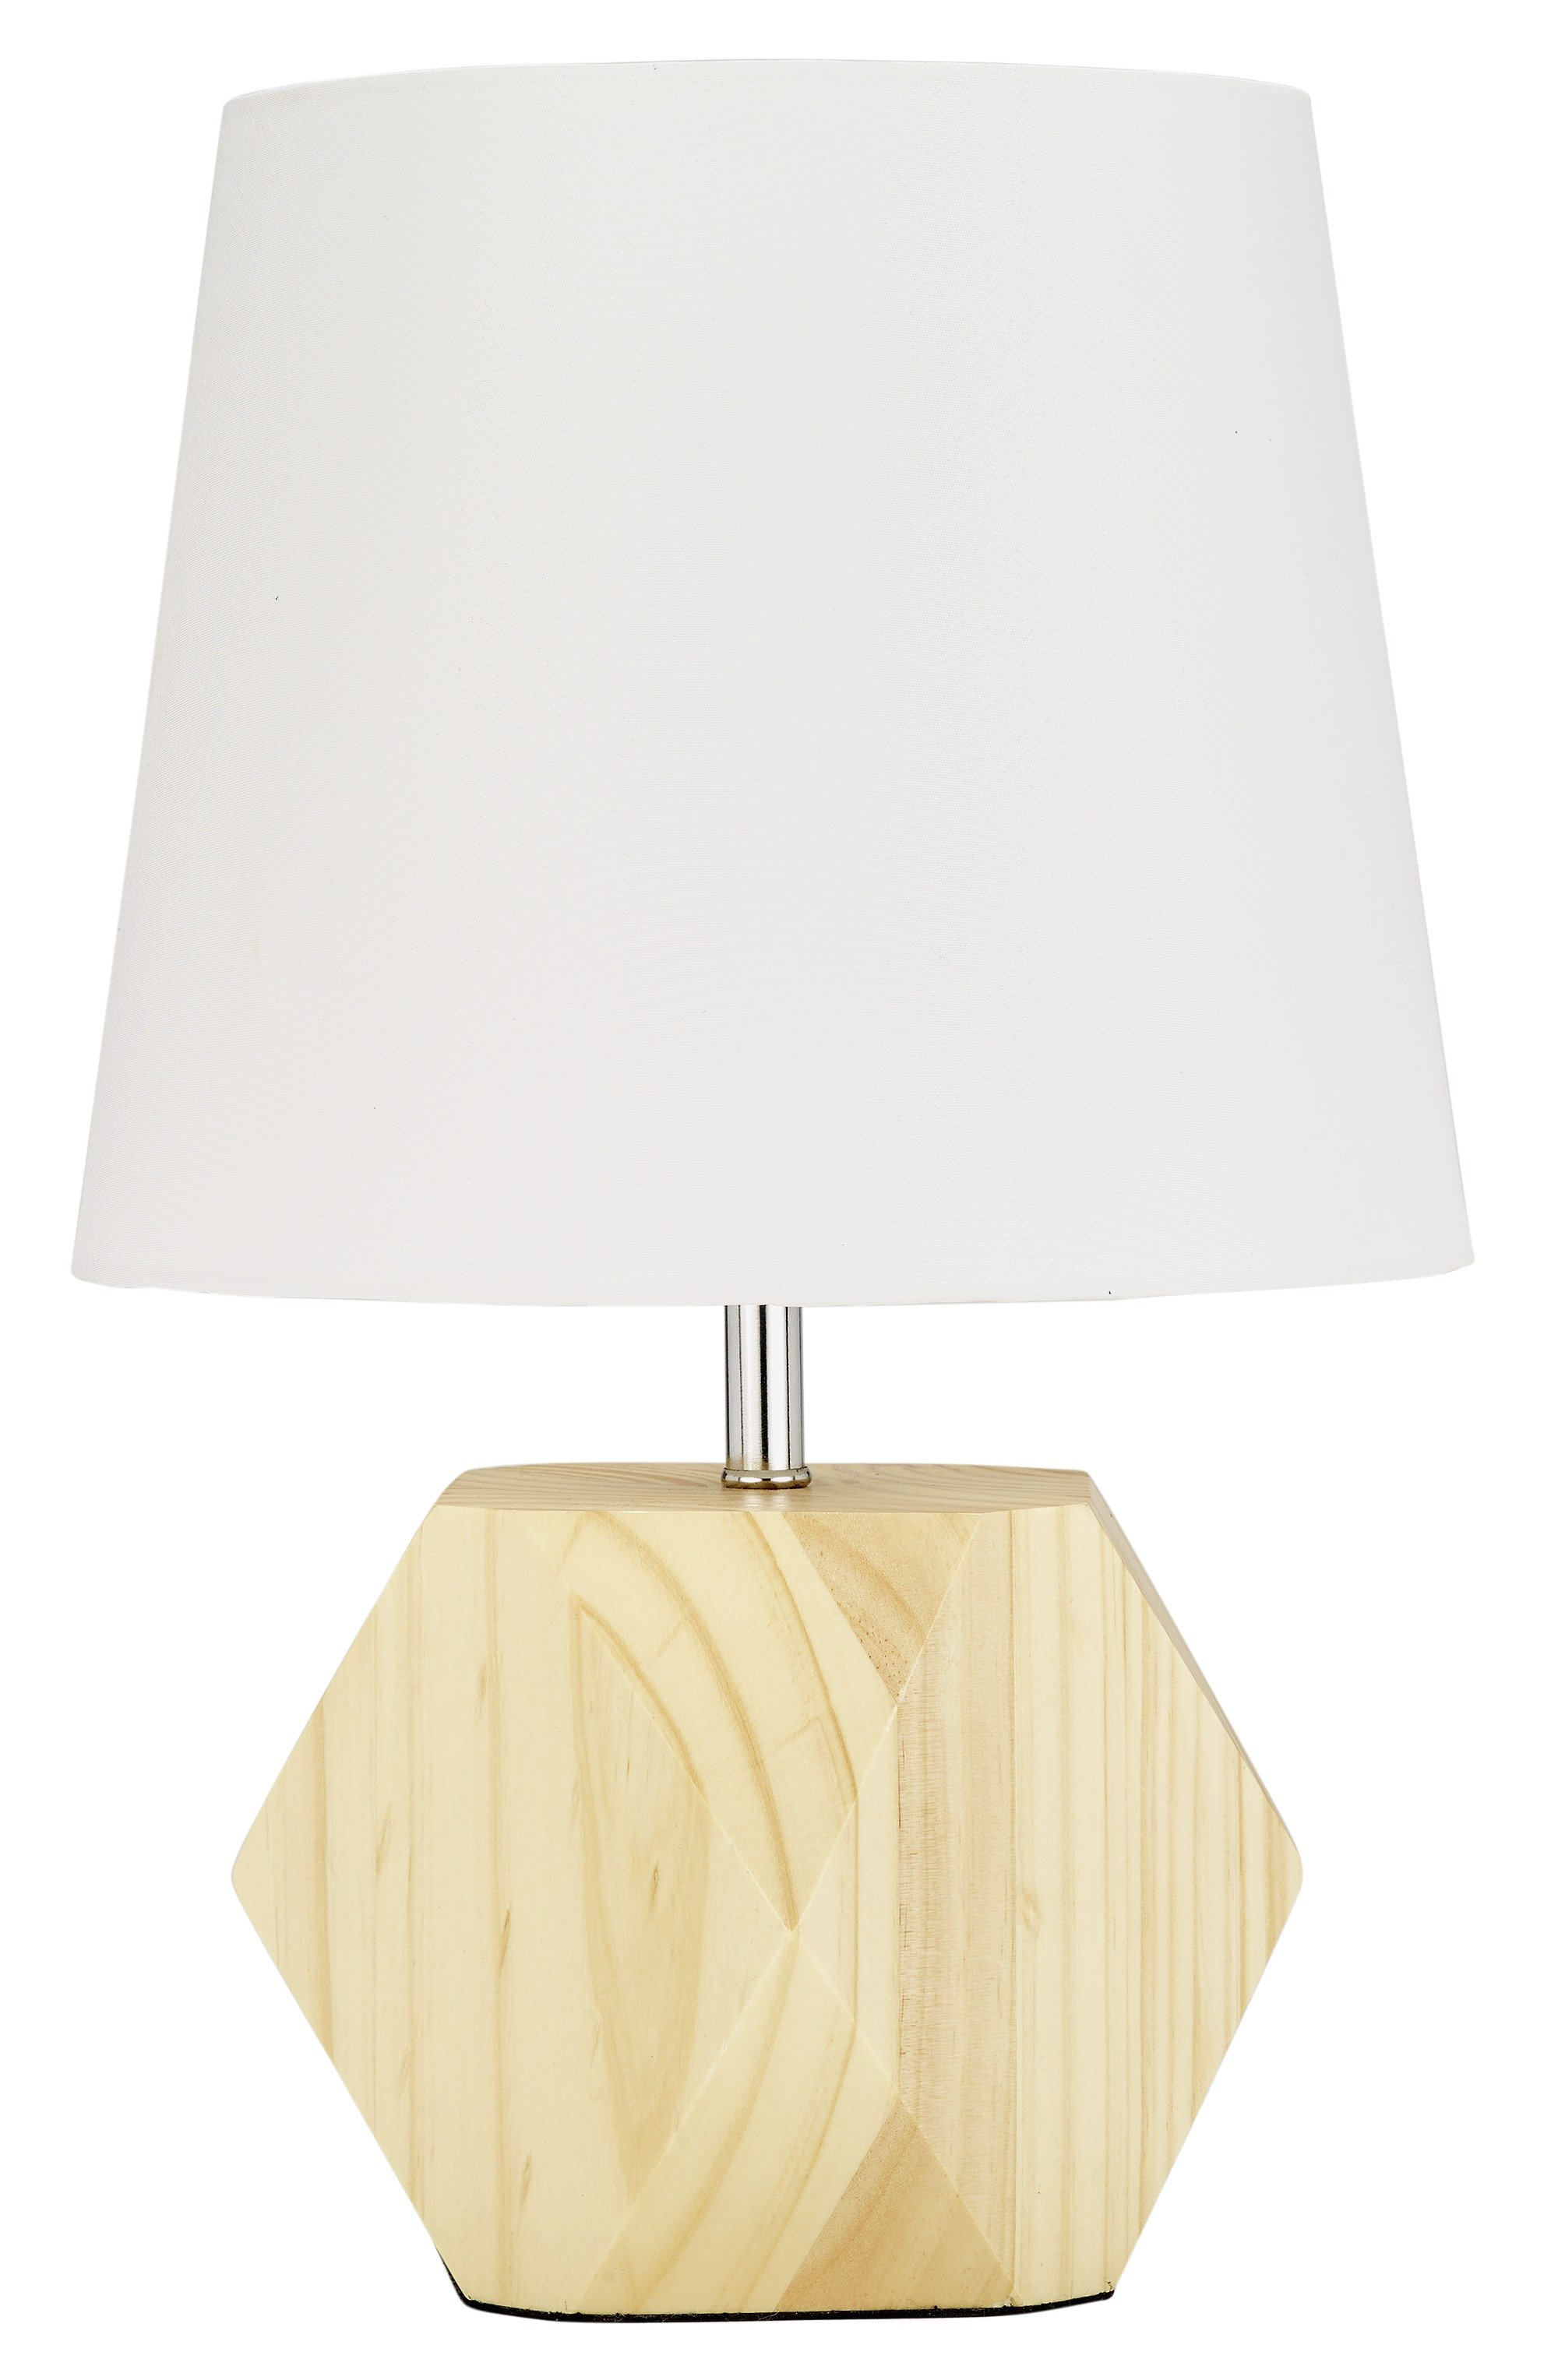 Image of Collection - Hex Natural Wood - Table Lamp